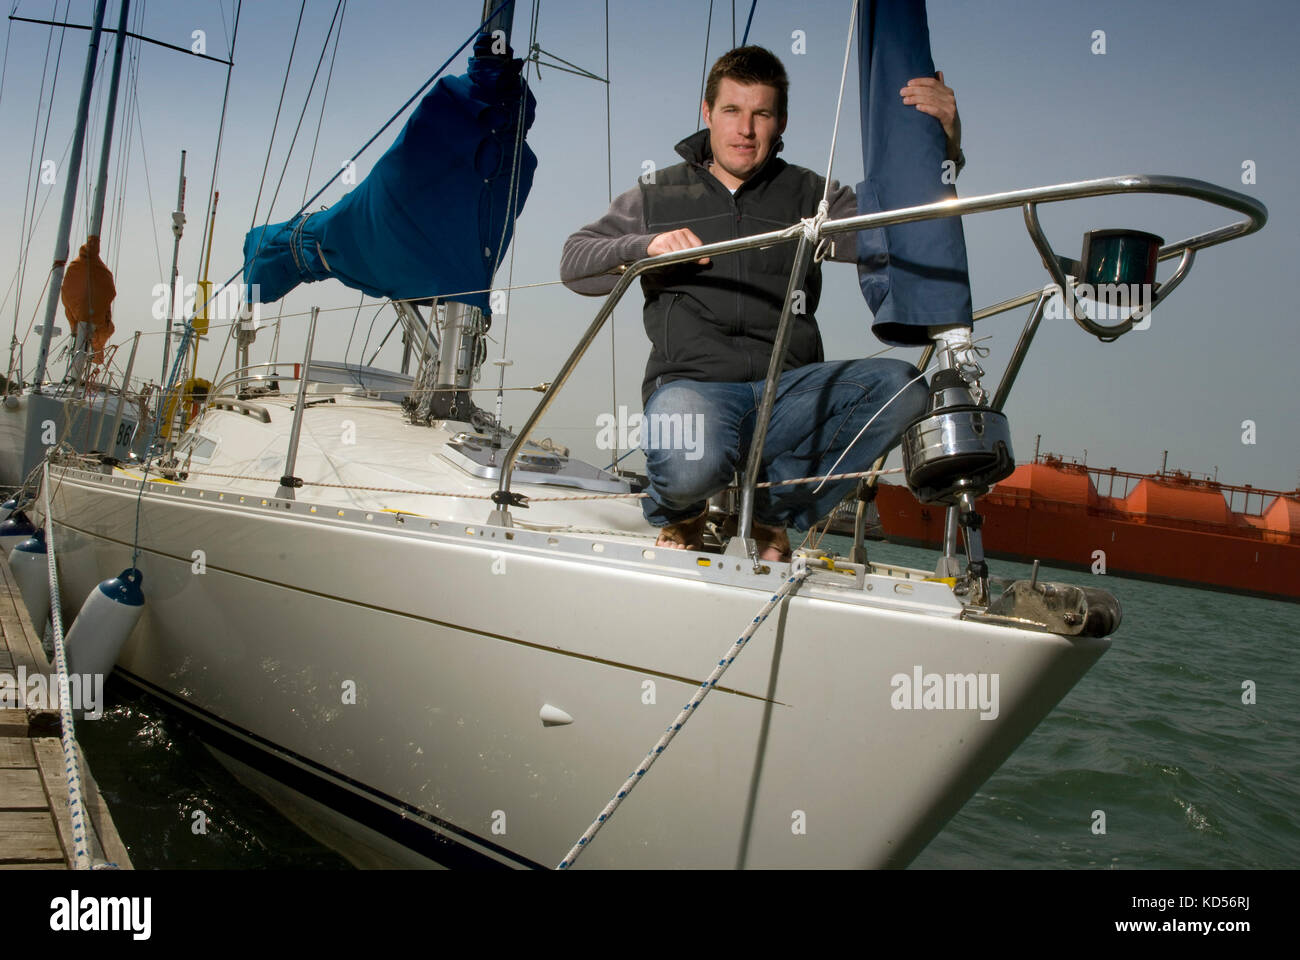 Yachtman Will Sayer with his yacht in Marchwood Yacht Club. Stock Photo